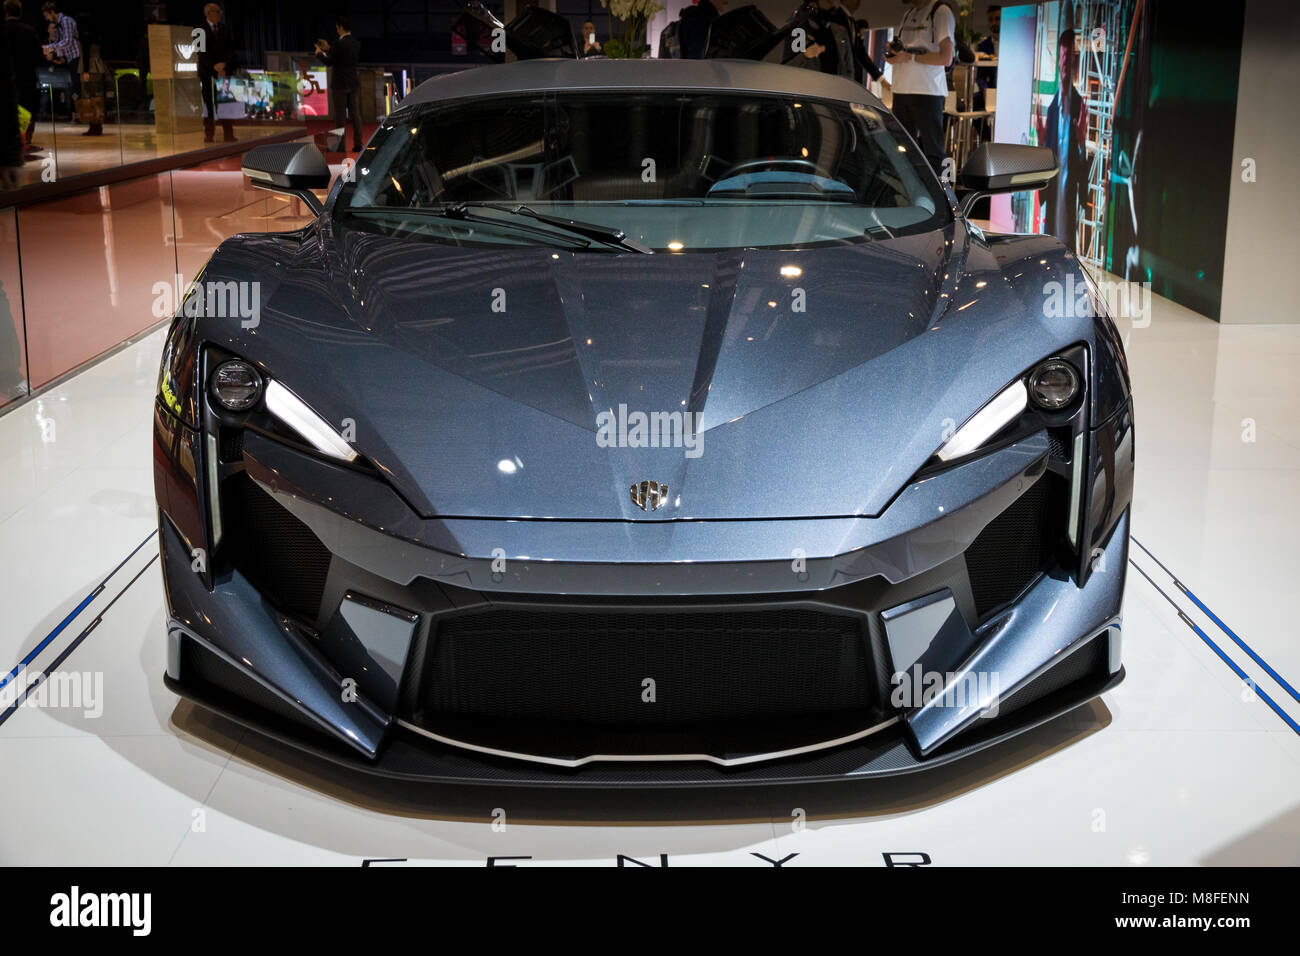 gen ve suisse le 7 mars 2018 w motors voiture de sport supersport fenyr a pr sent la 88e. Black Bedroom Furniture Sets. Home Design Ideas